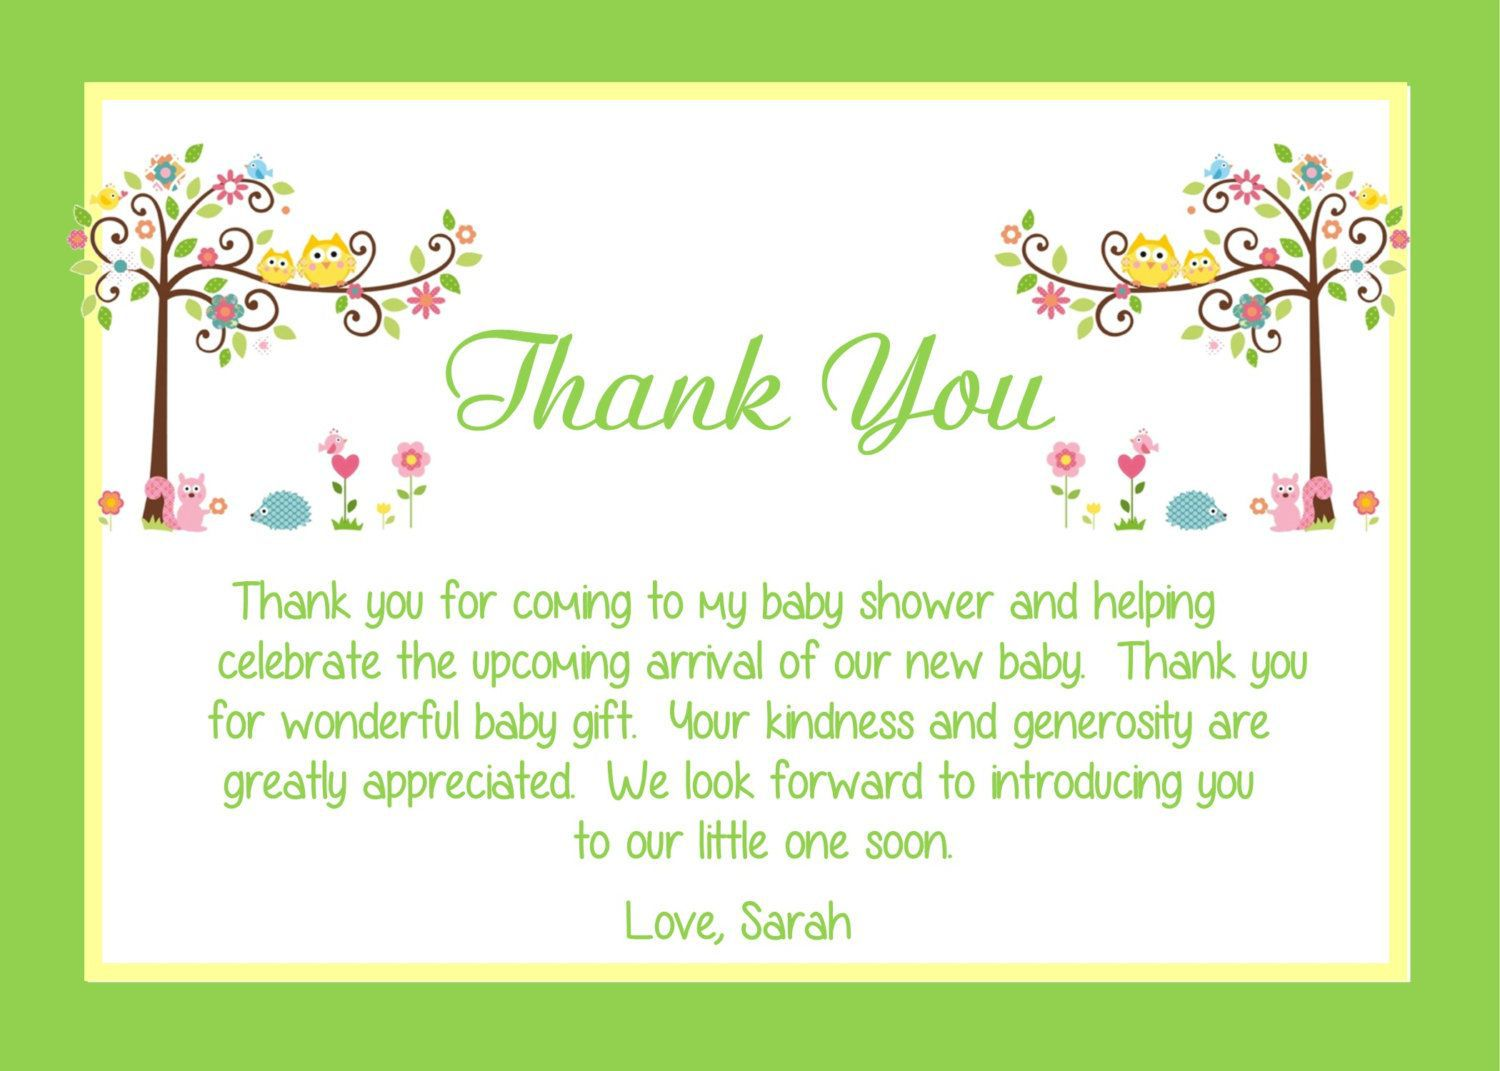 001 Rare Thank You Card Wording Baby Shower High Resolution  Note For Money Someone Who Didn't Attend HostesFull